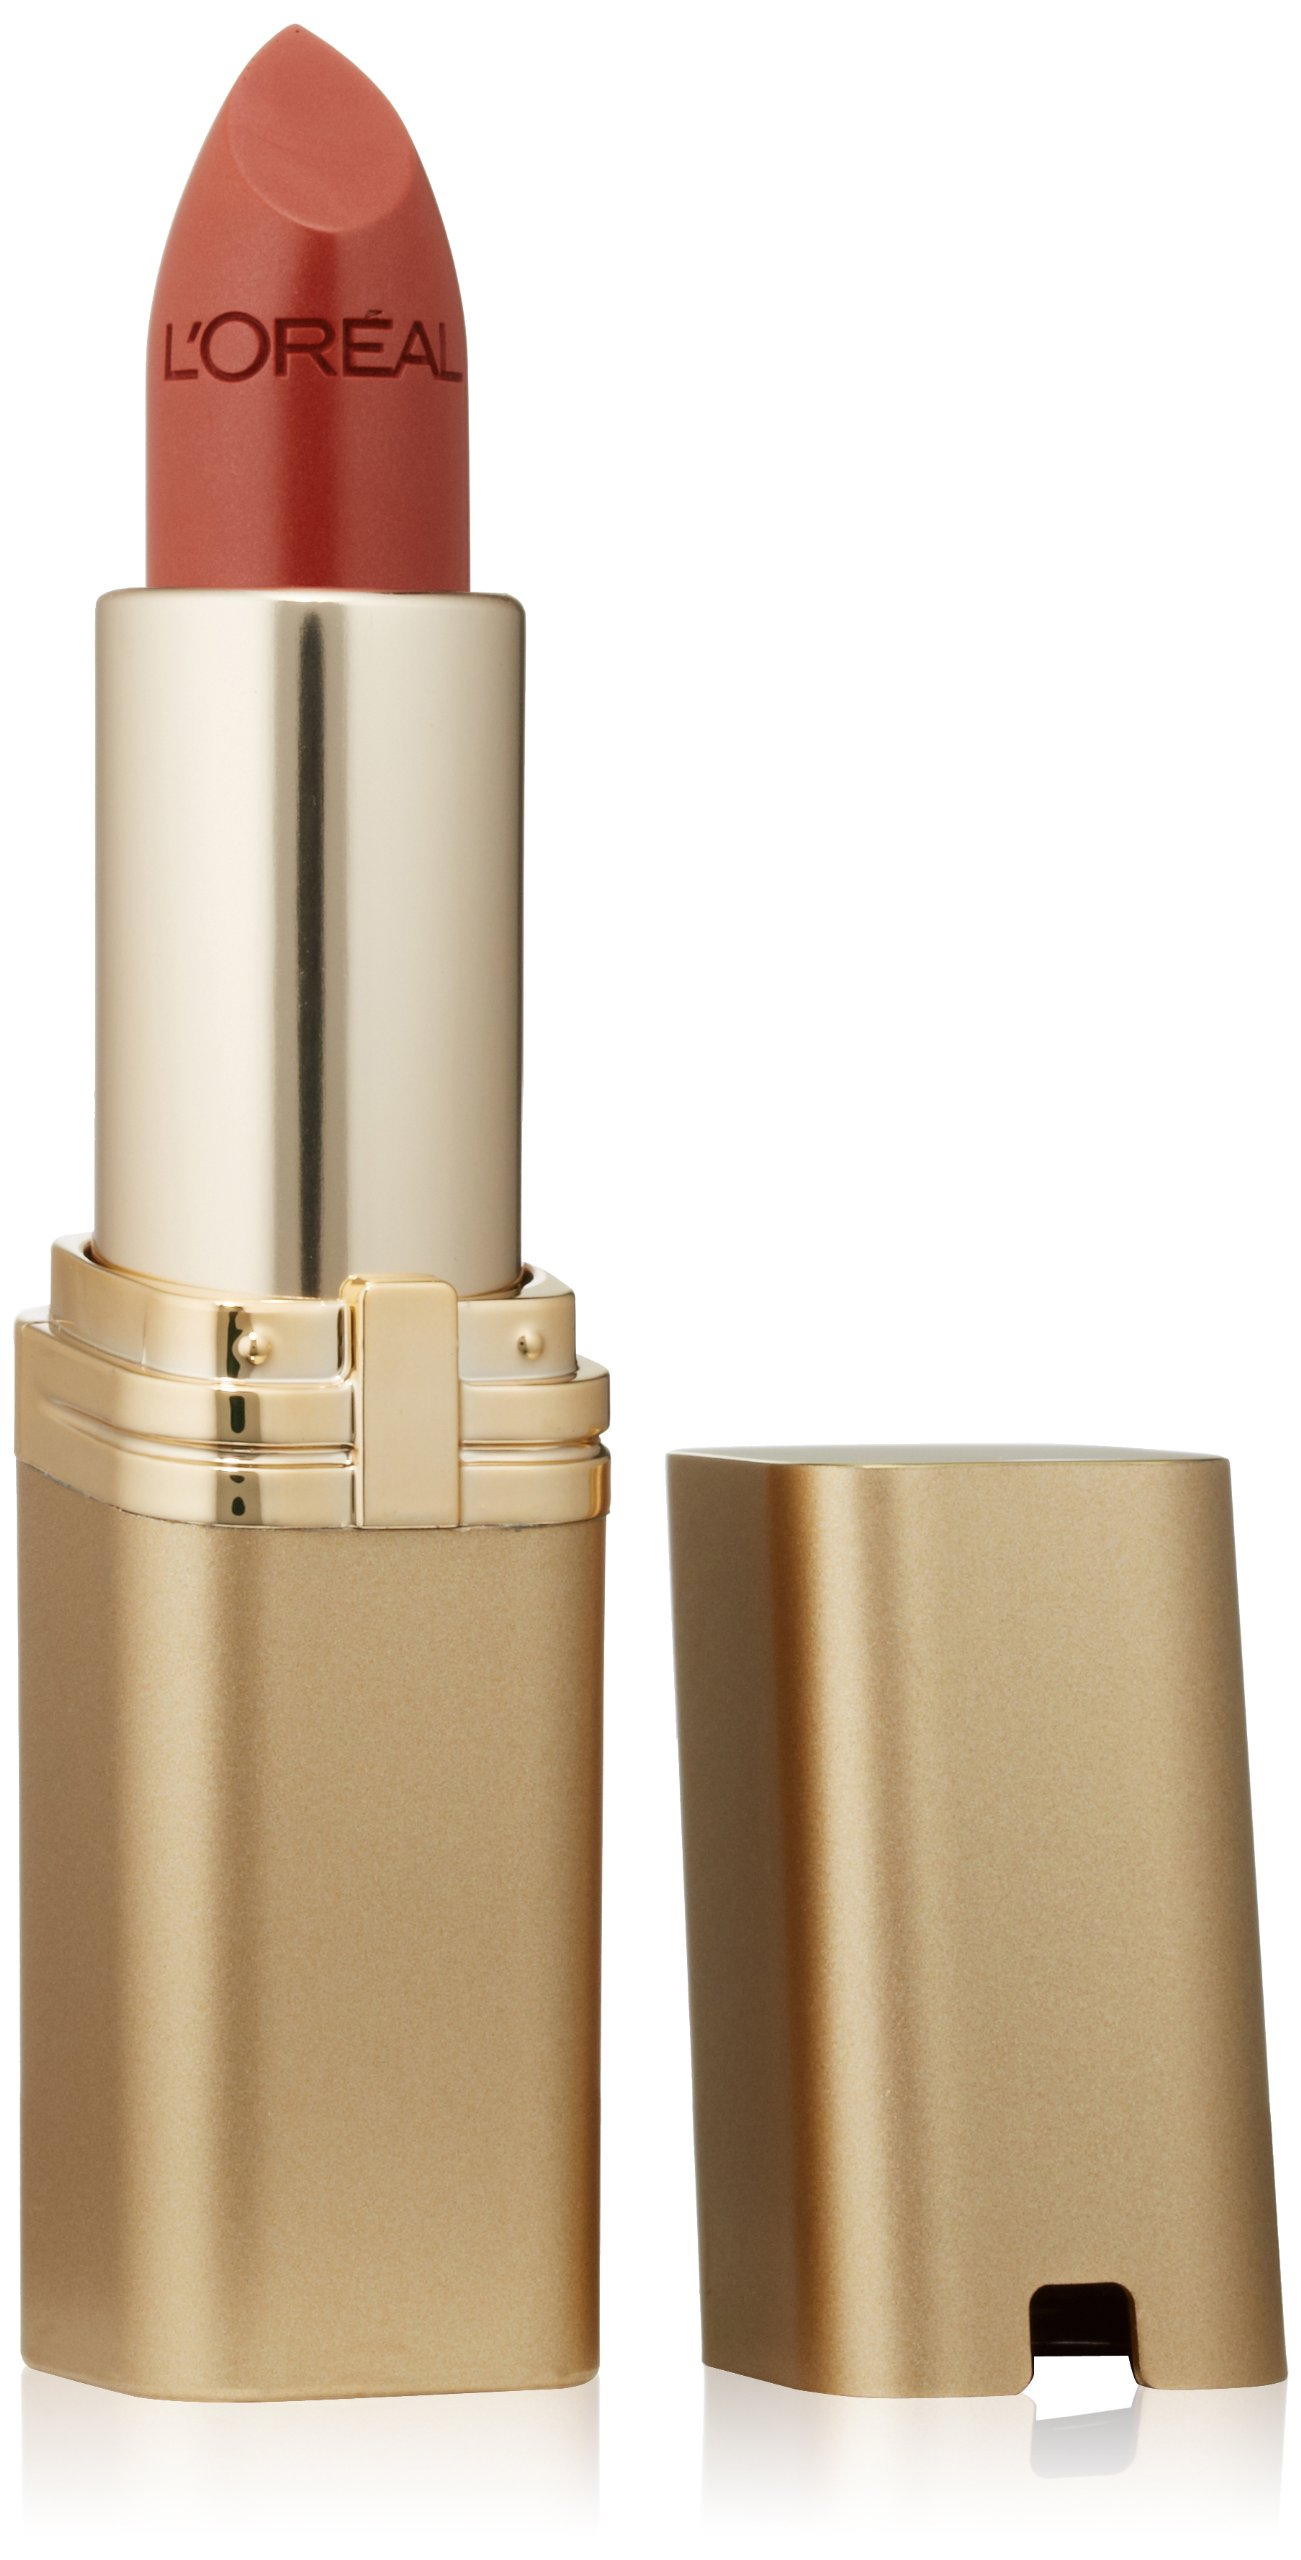 L'Oreal Paris Makeup Colour Riche Original Creamy, Hydrating Satin Lipstick, 850 Brazil Nut, 1 Count